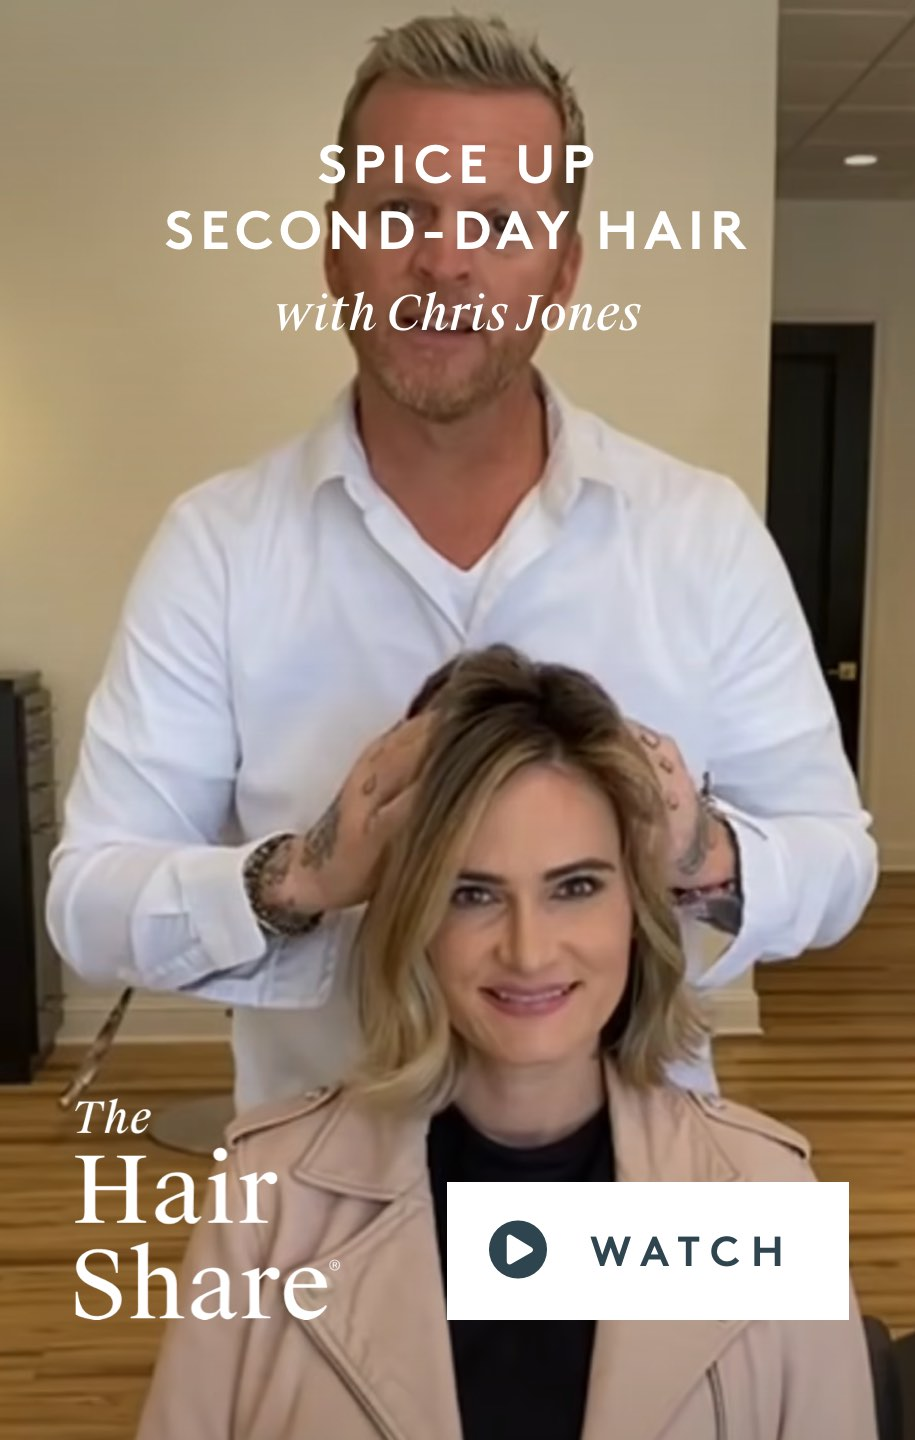 Spice Up Second-Day Hair With Chris Jones